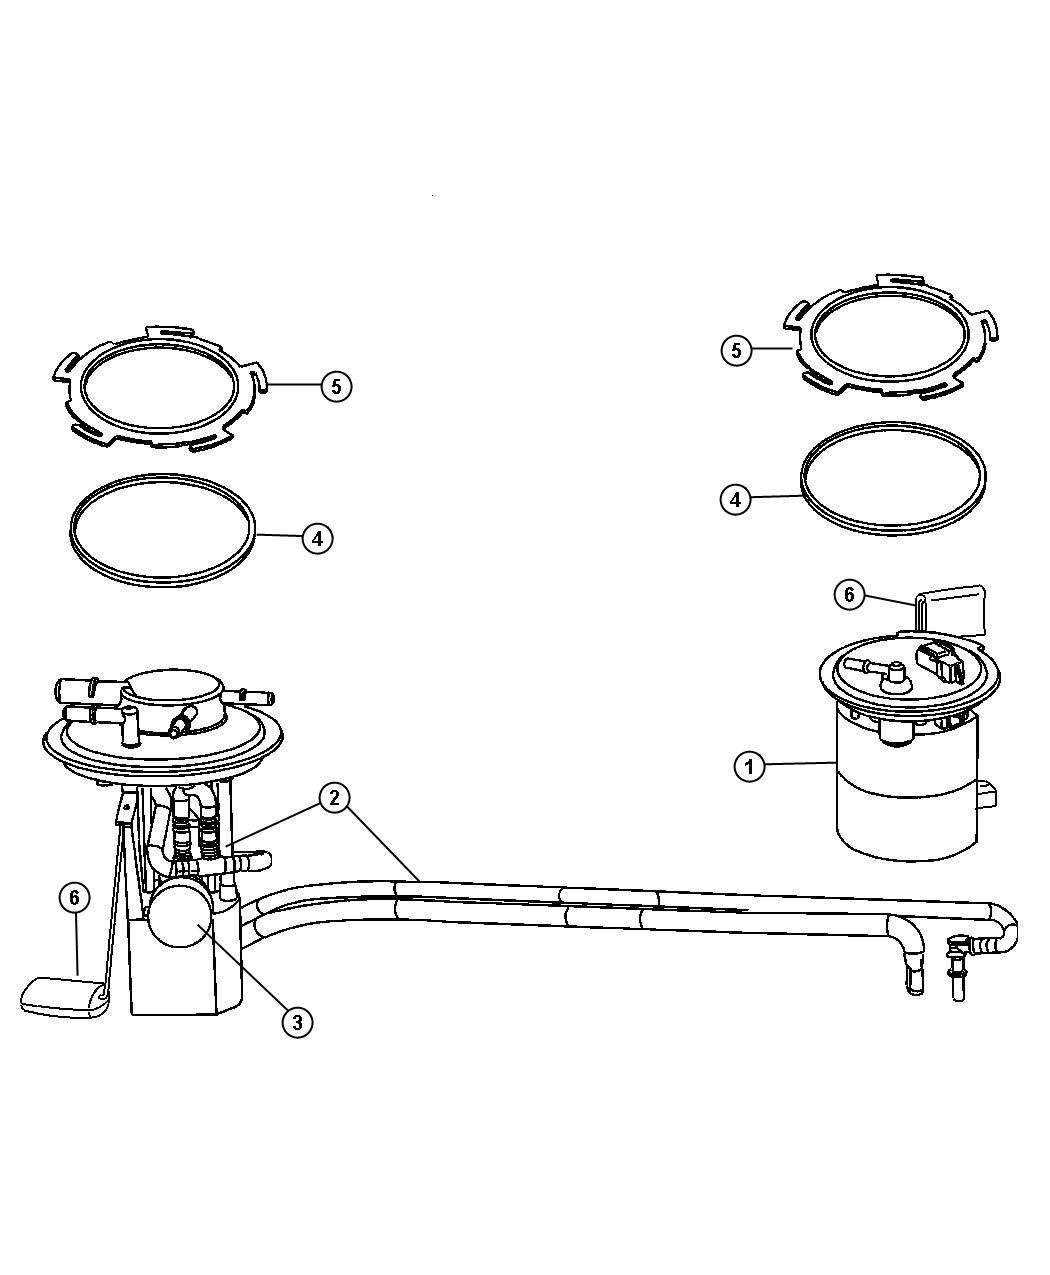 Grand Cherokee WK Suspension Parts besides 2005 Chrysler Town And Country Engine Diagram besides Dodge Charger Side Accessories further Chrysler Parts furthermore P 0996b43f80806039. on 2006 chrysler pacifica accessories